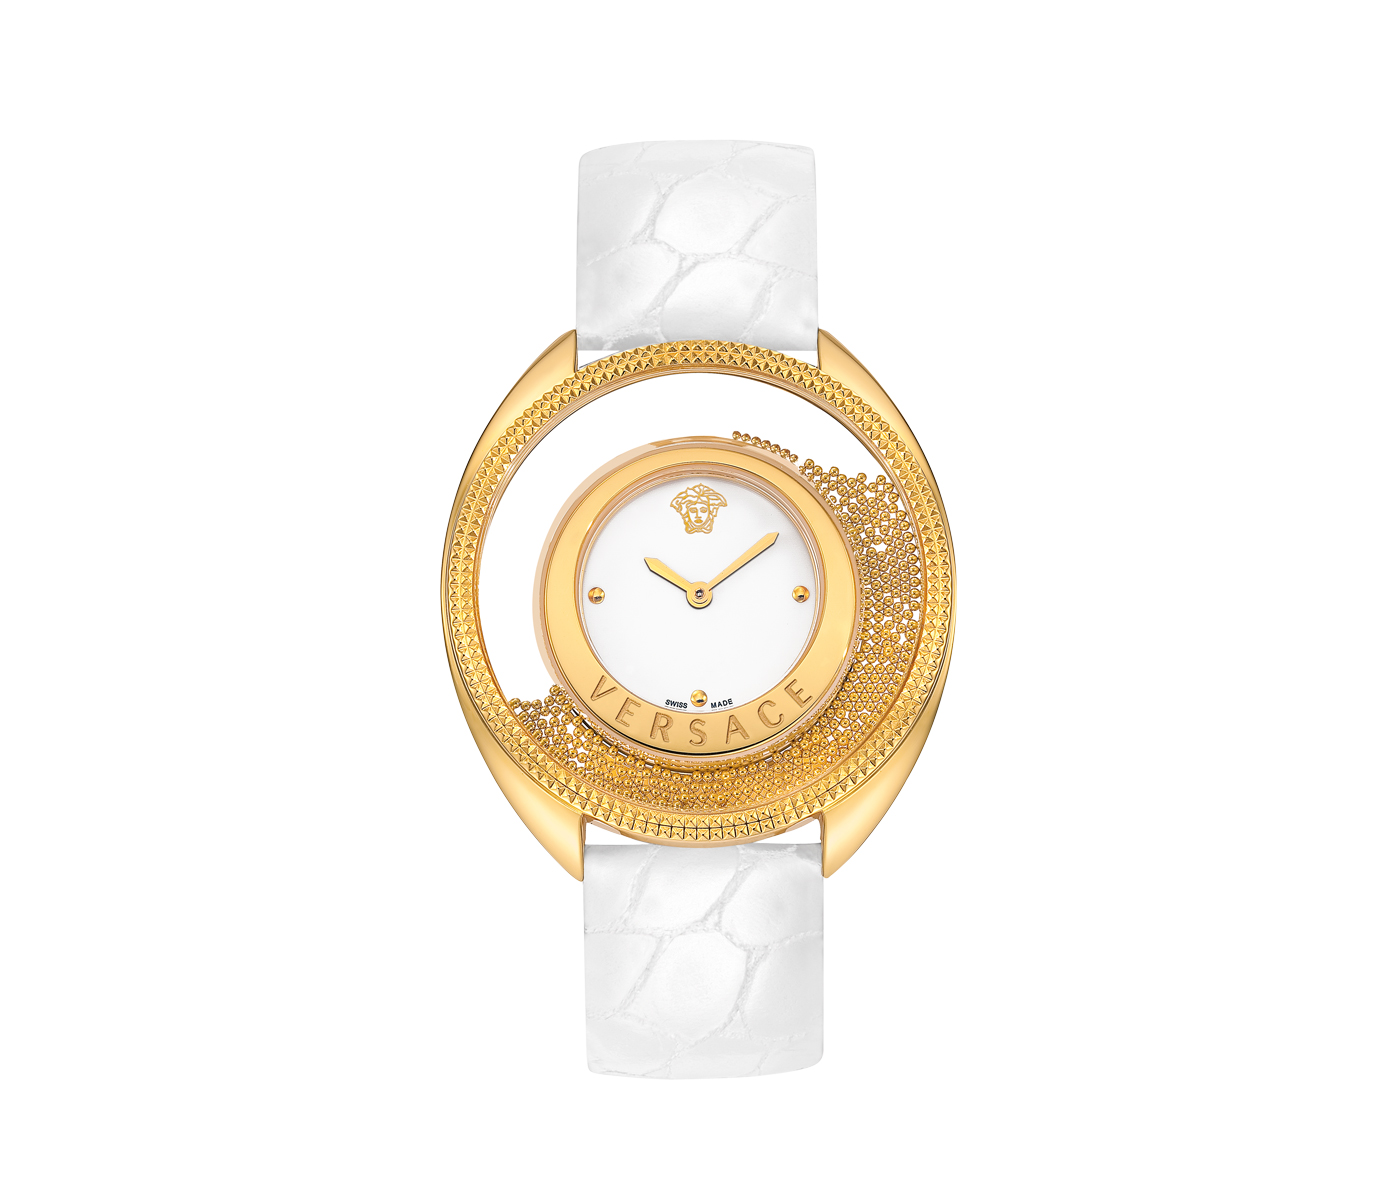 Versace Watches For Women-2011-2012